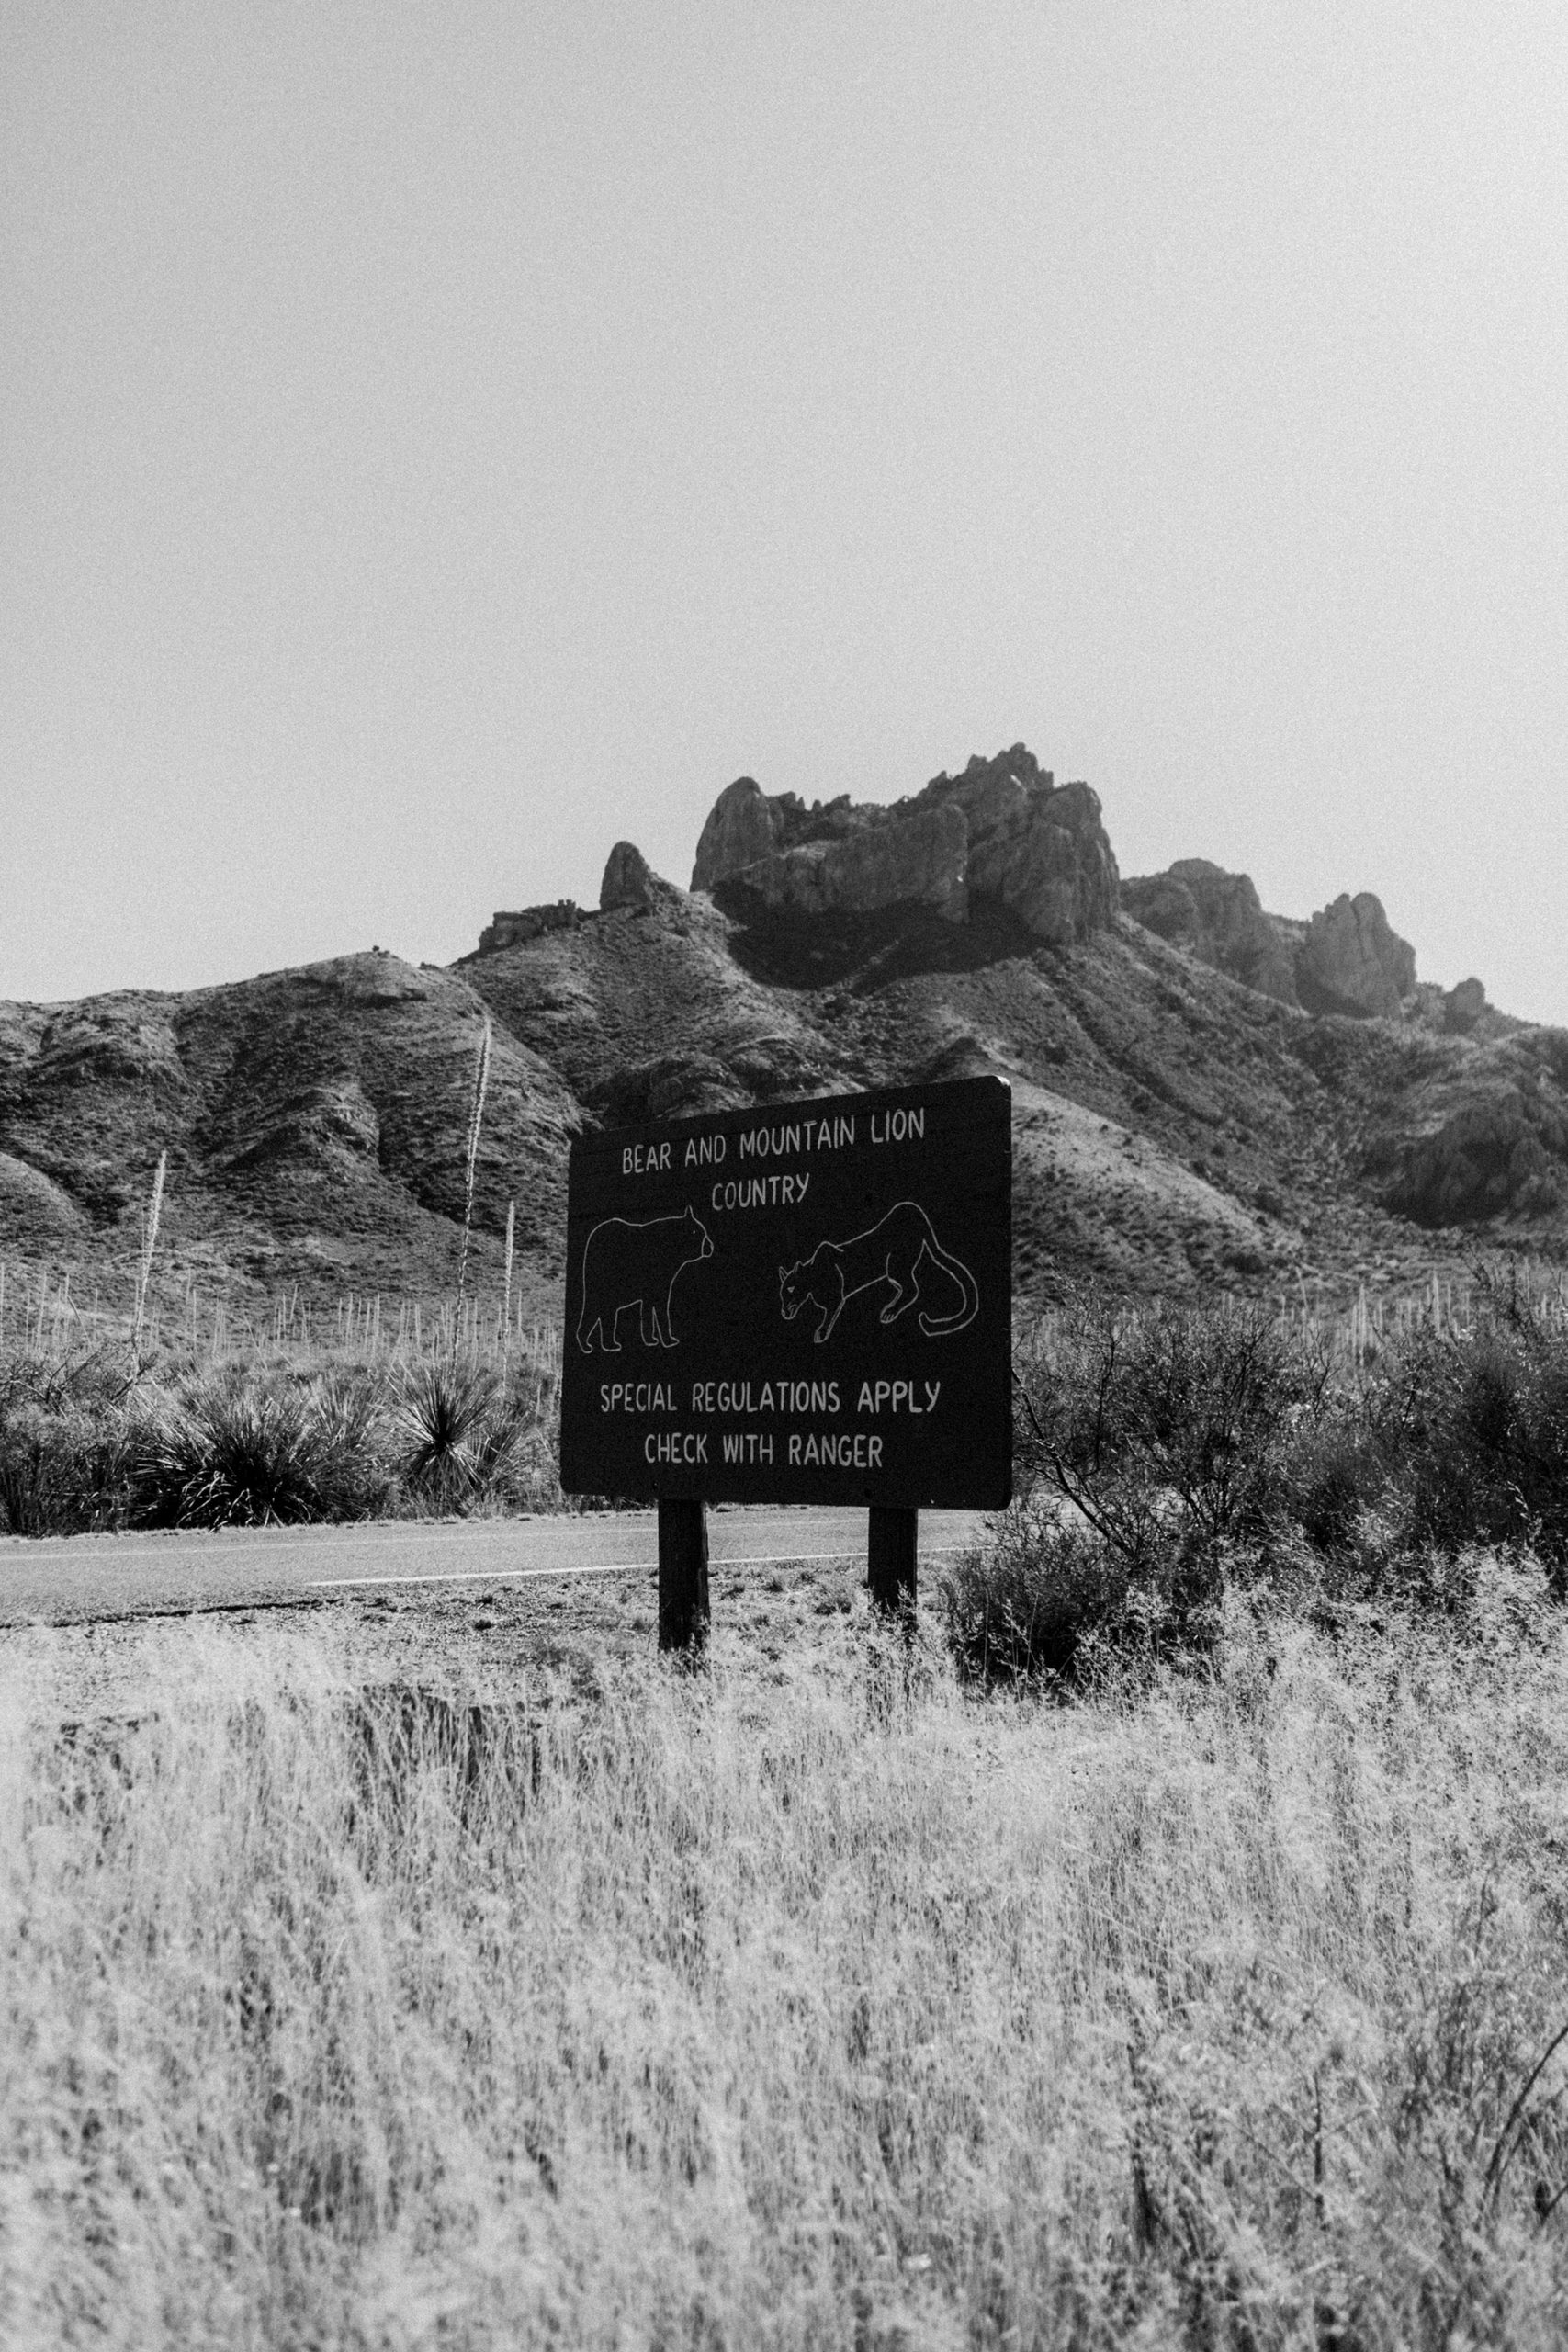 Inside Big Bend Nationalpark – A Texas Roadtrip Travel Video / Travel Diary + Video by iHeartAlice.com - Lifestyle, Travel, Fashion & Foodblog by Alice M. Huynh / Texas Travel Guide